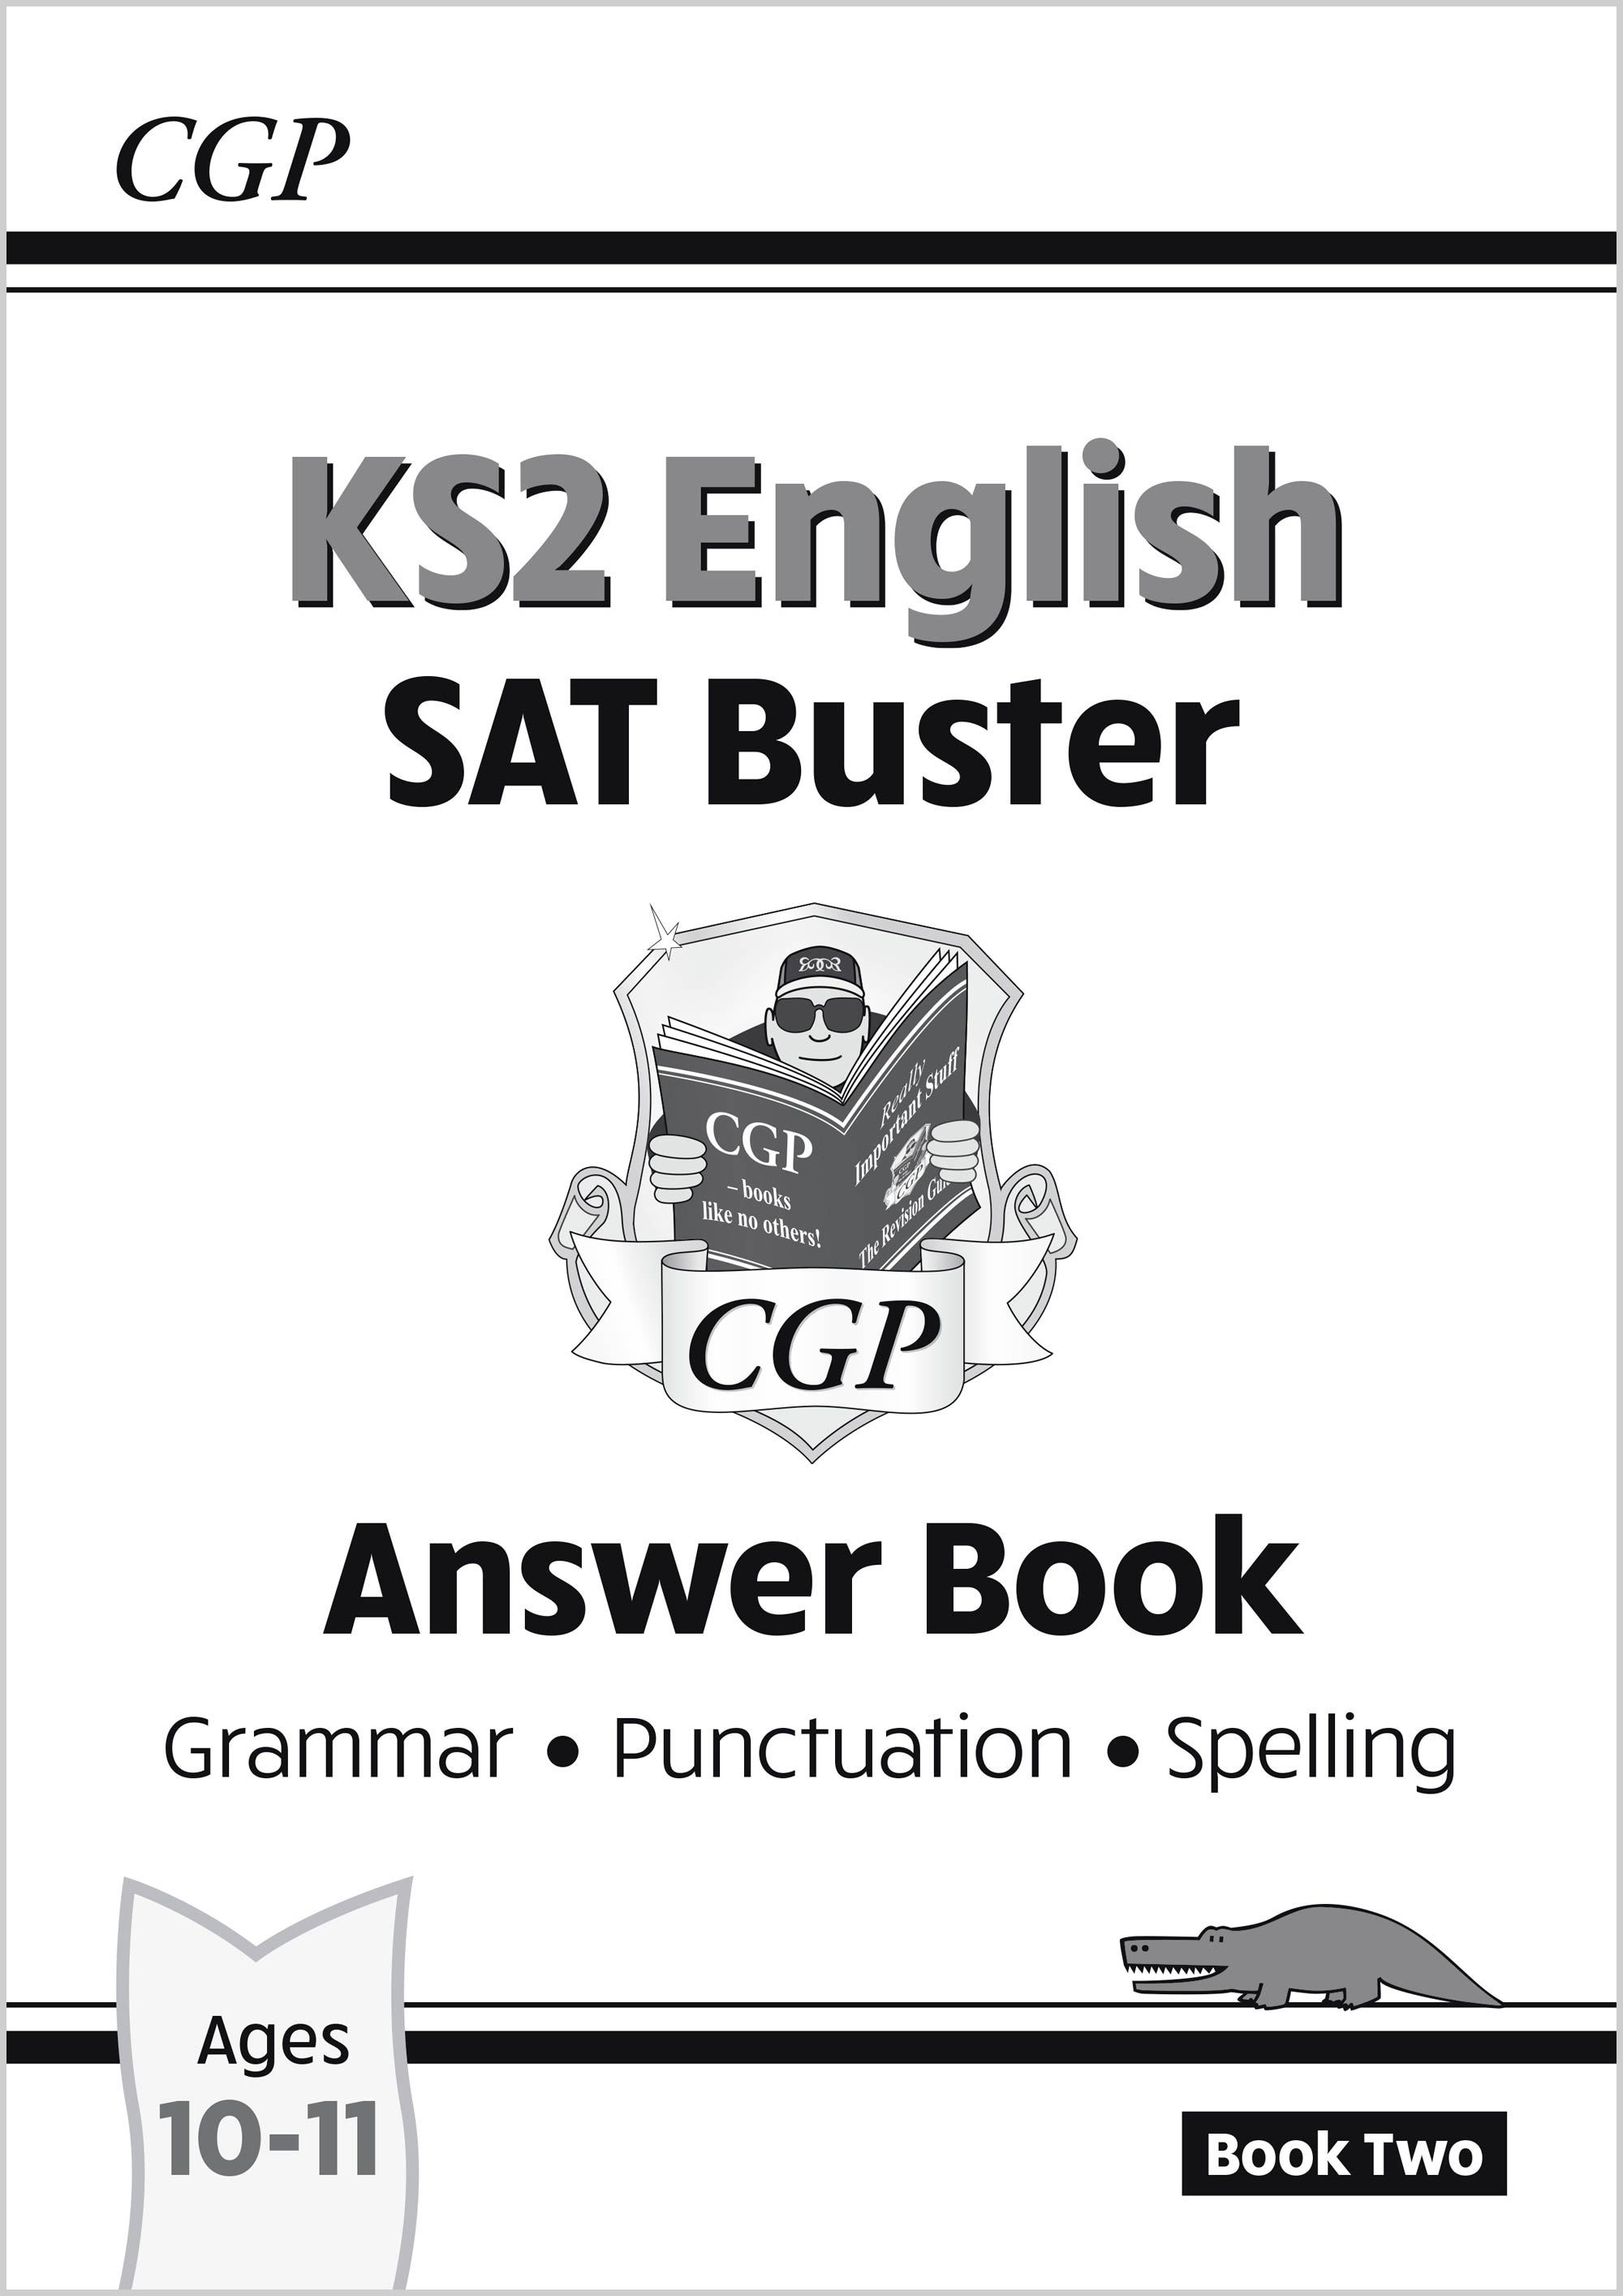 E6GA223 - New KS2 English SAT Buster: Grammar, Punctuation & Spelling - Answer Book 2